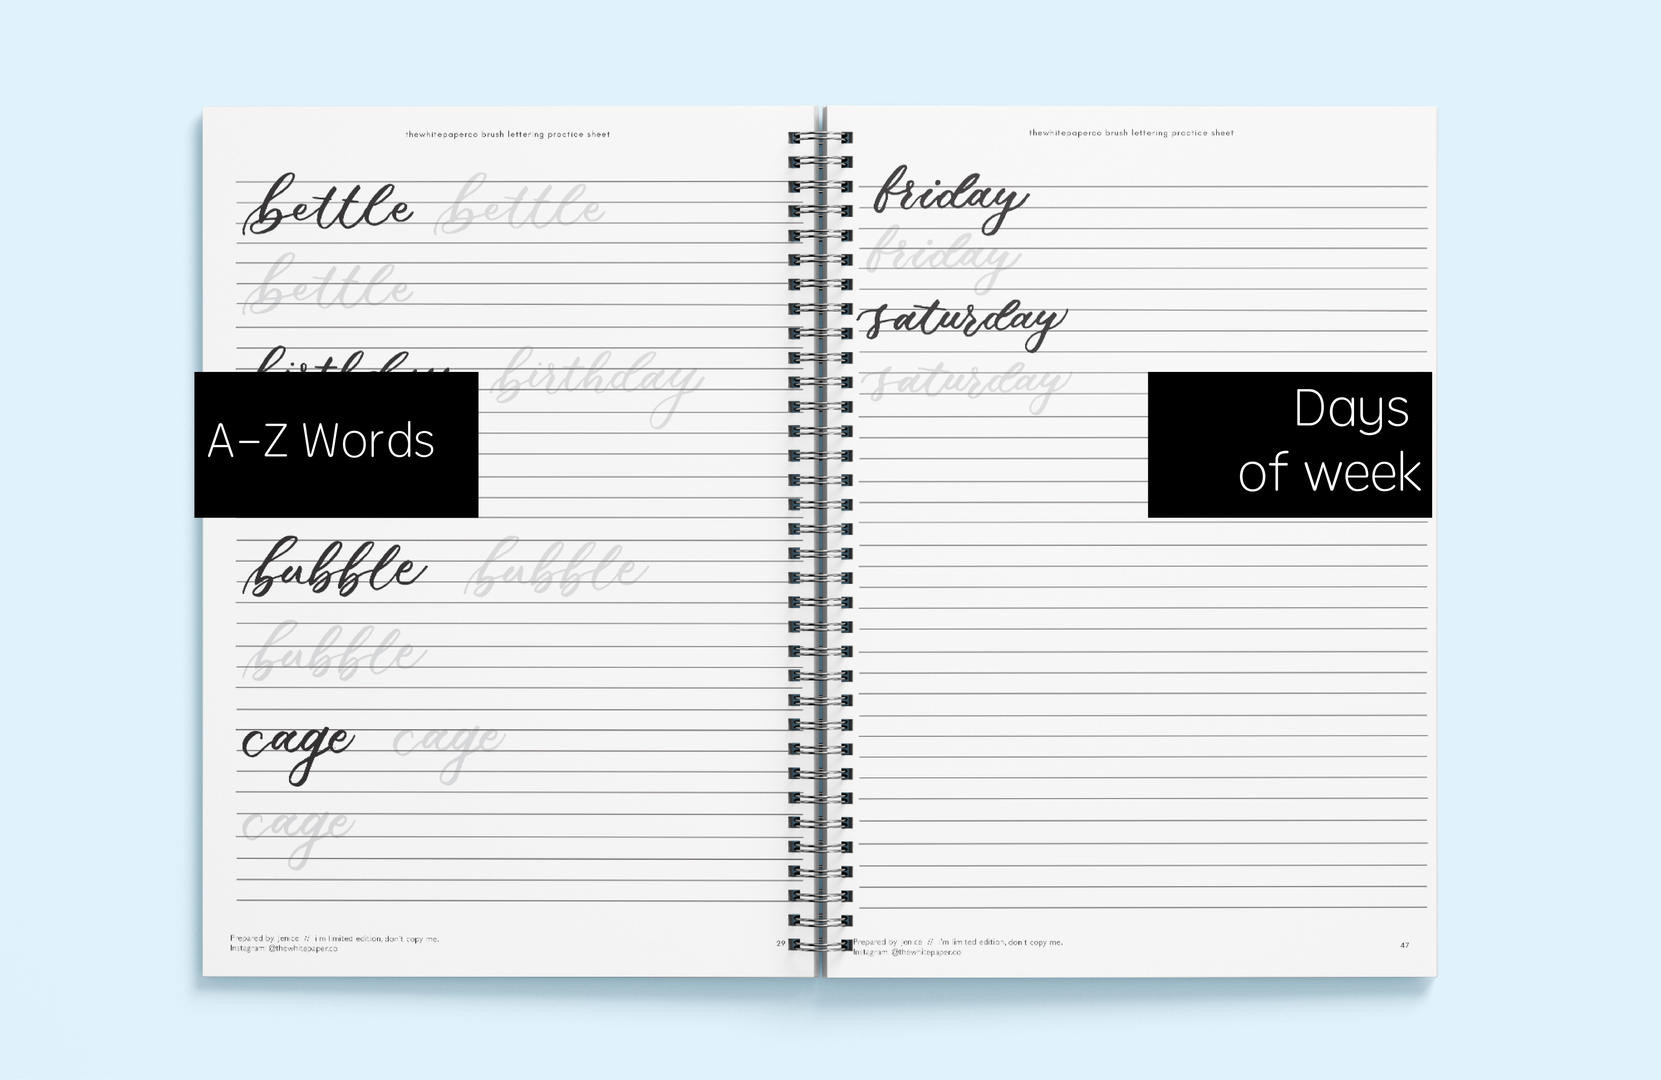 A-Z Words & Days of Week Brush Lettering